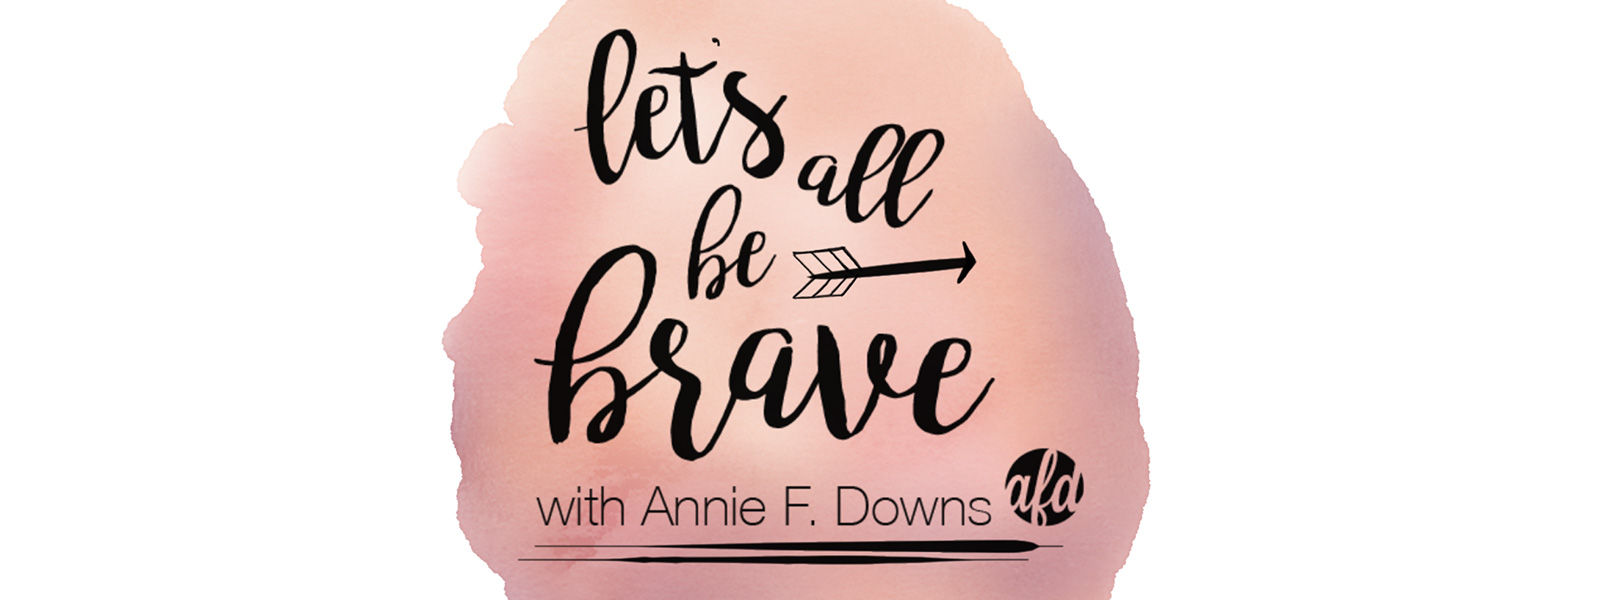 Annie Downs: Words That Kill... And Heal - Bible Gateway Blog